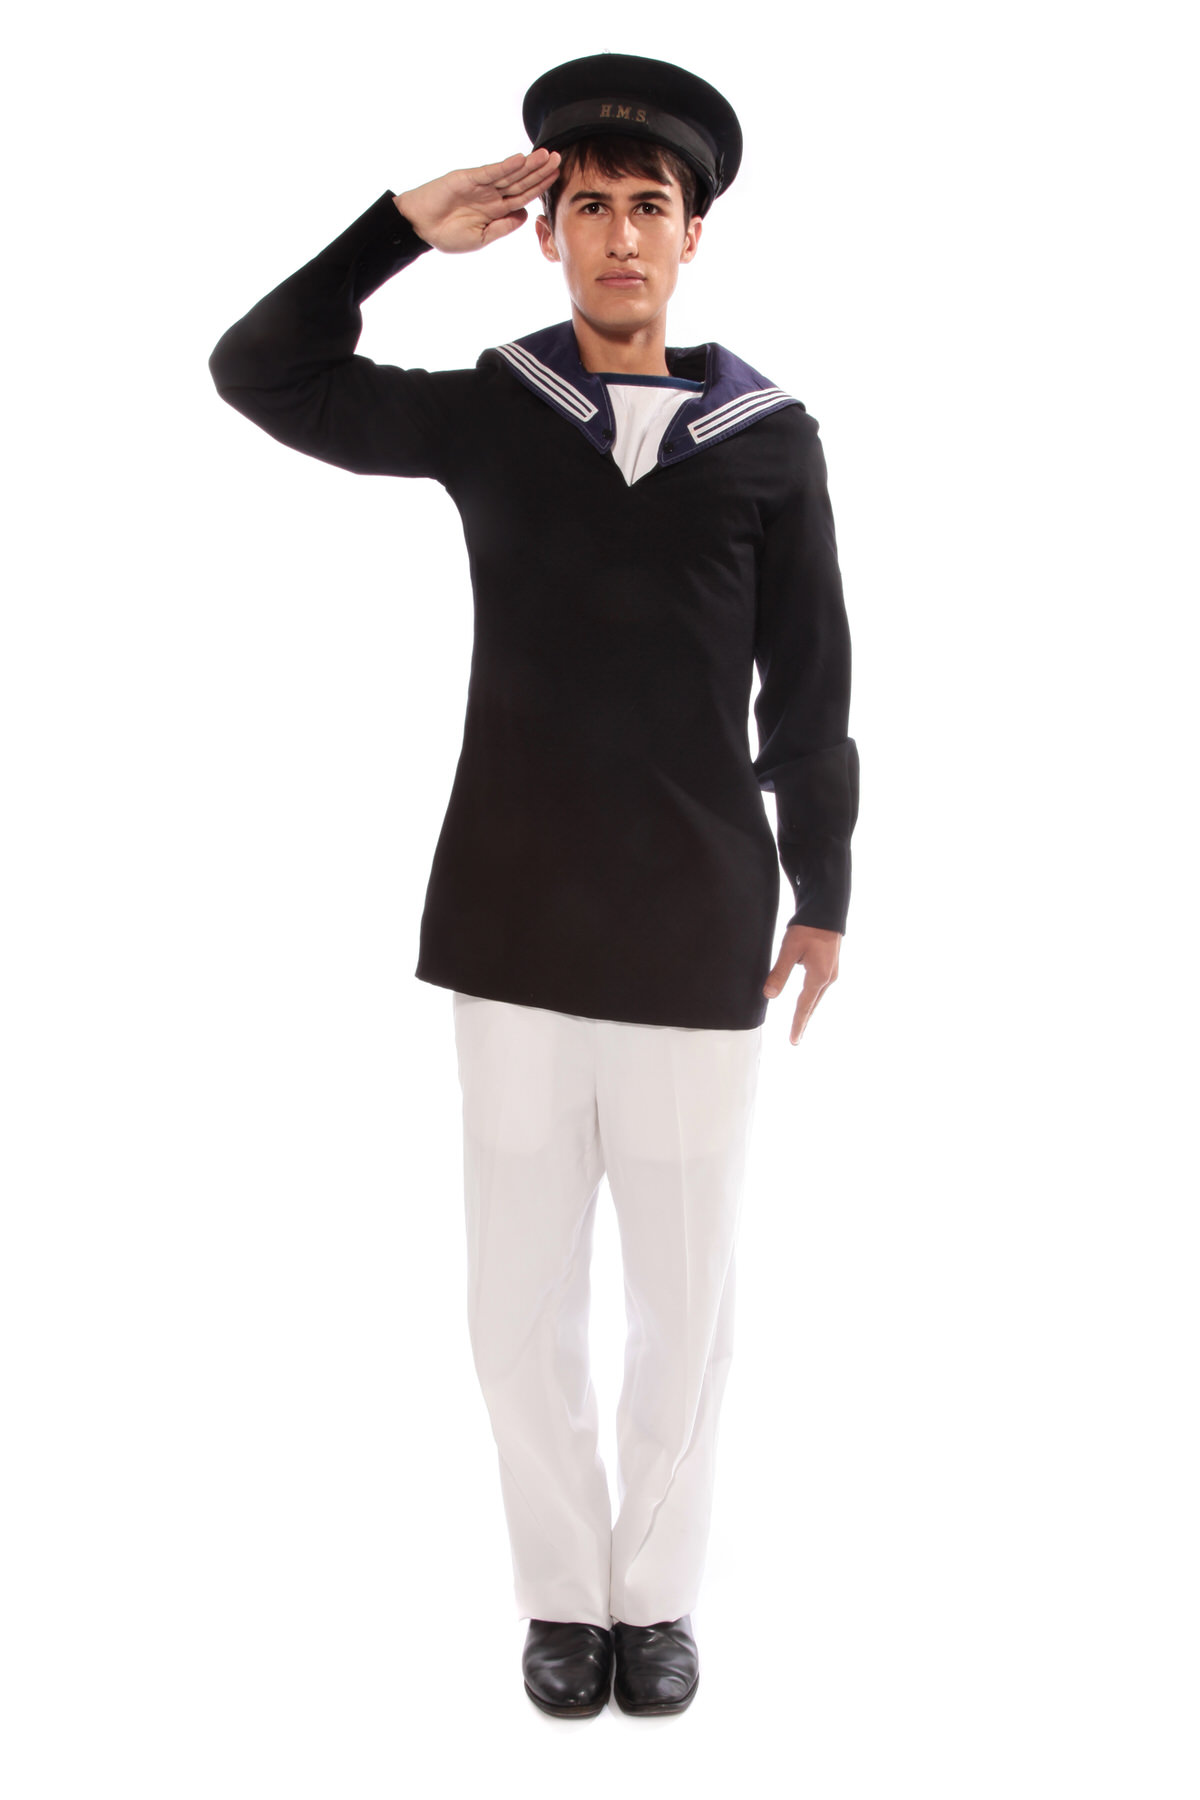 SAILOR NAVY COSTUME W OFFICERS PEAKED CAP